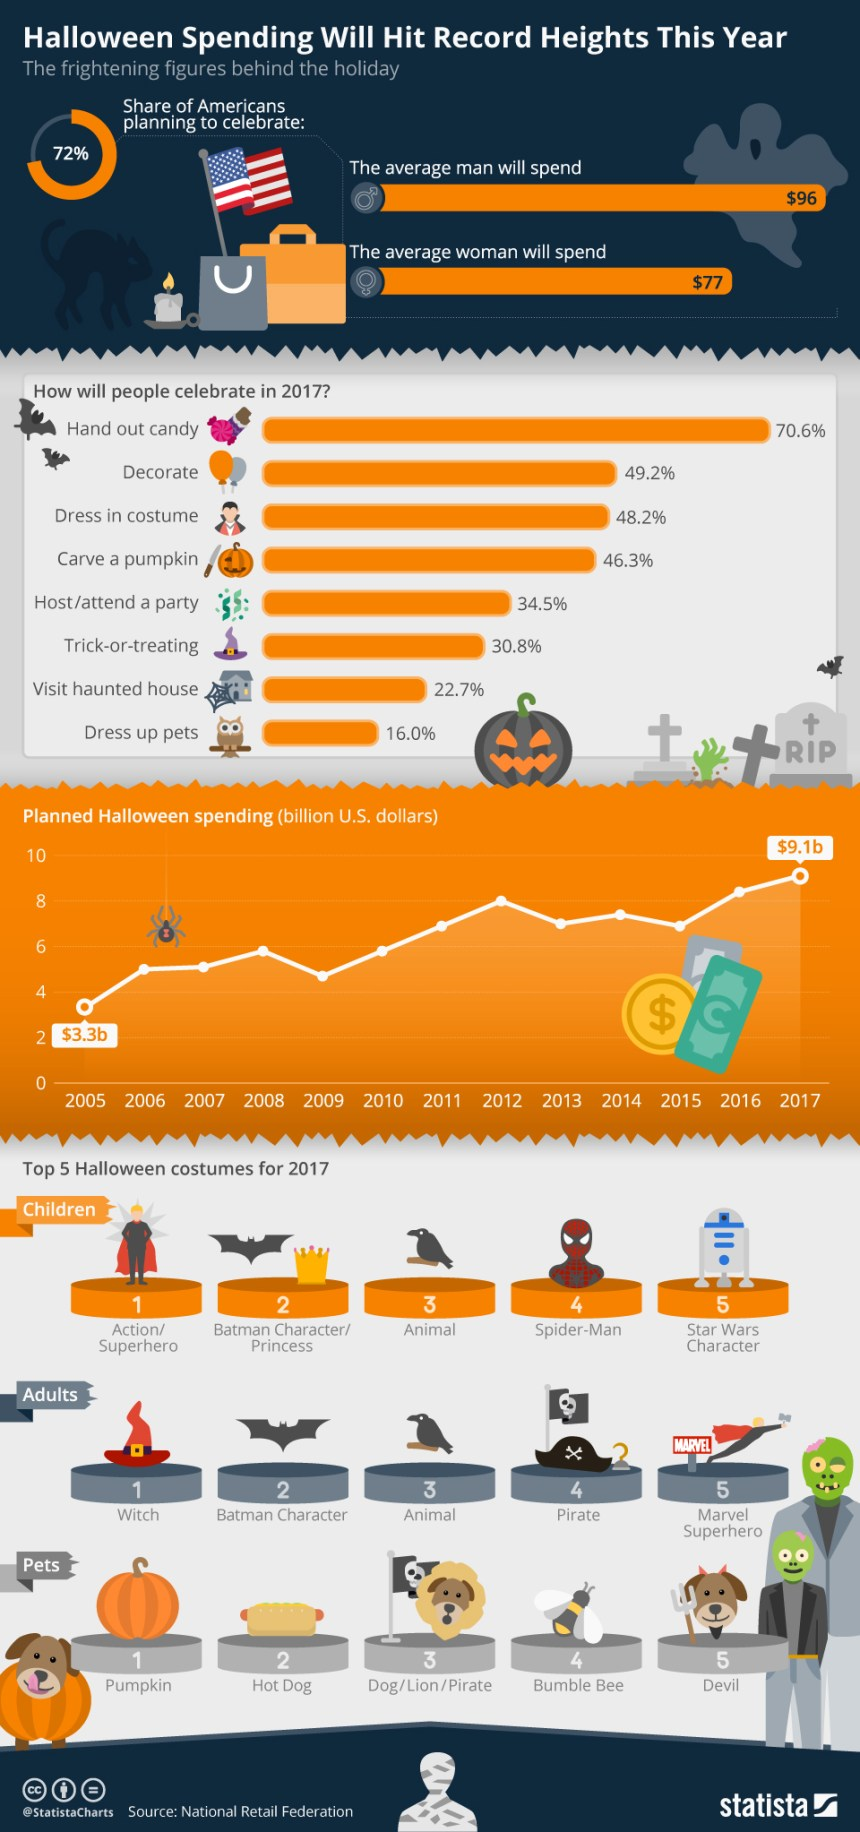 """<a href=""""https://www.statista.com/chart/11634/halloween-spending-will-hit-record-heights-this-year/"""" title=""""Infographic: Halloween Spending Will Hit Record Heights This Year  